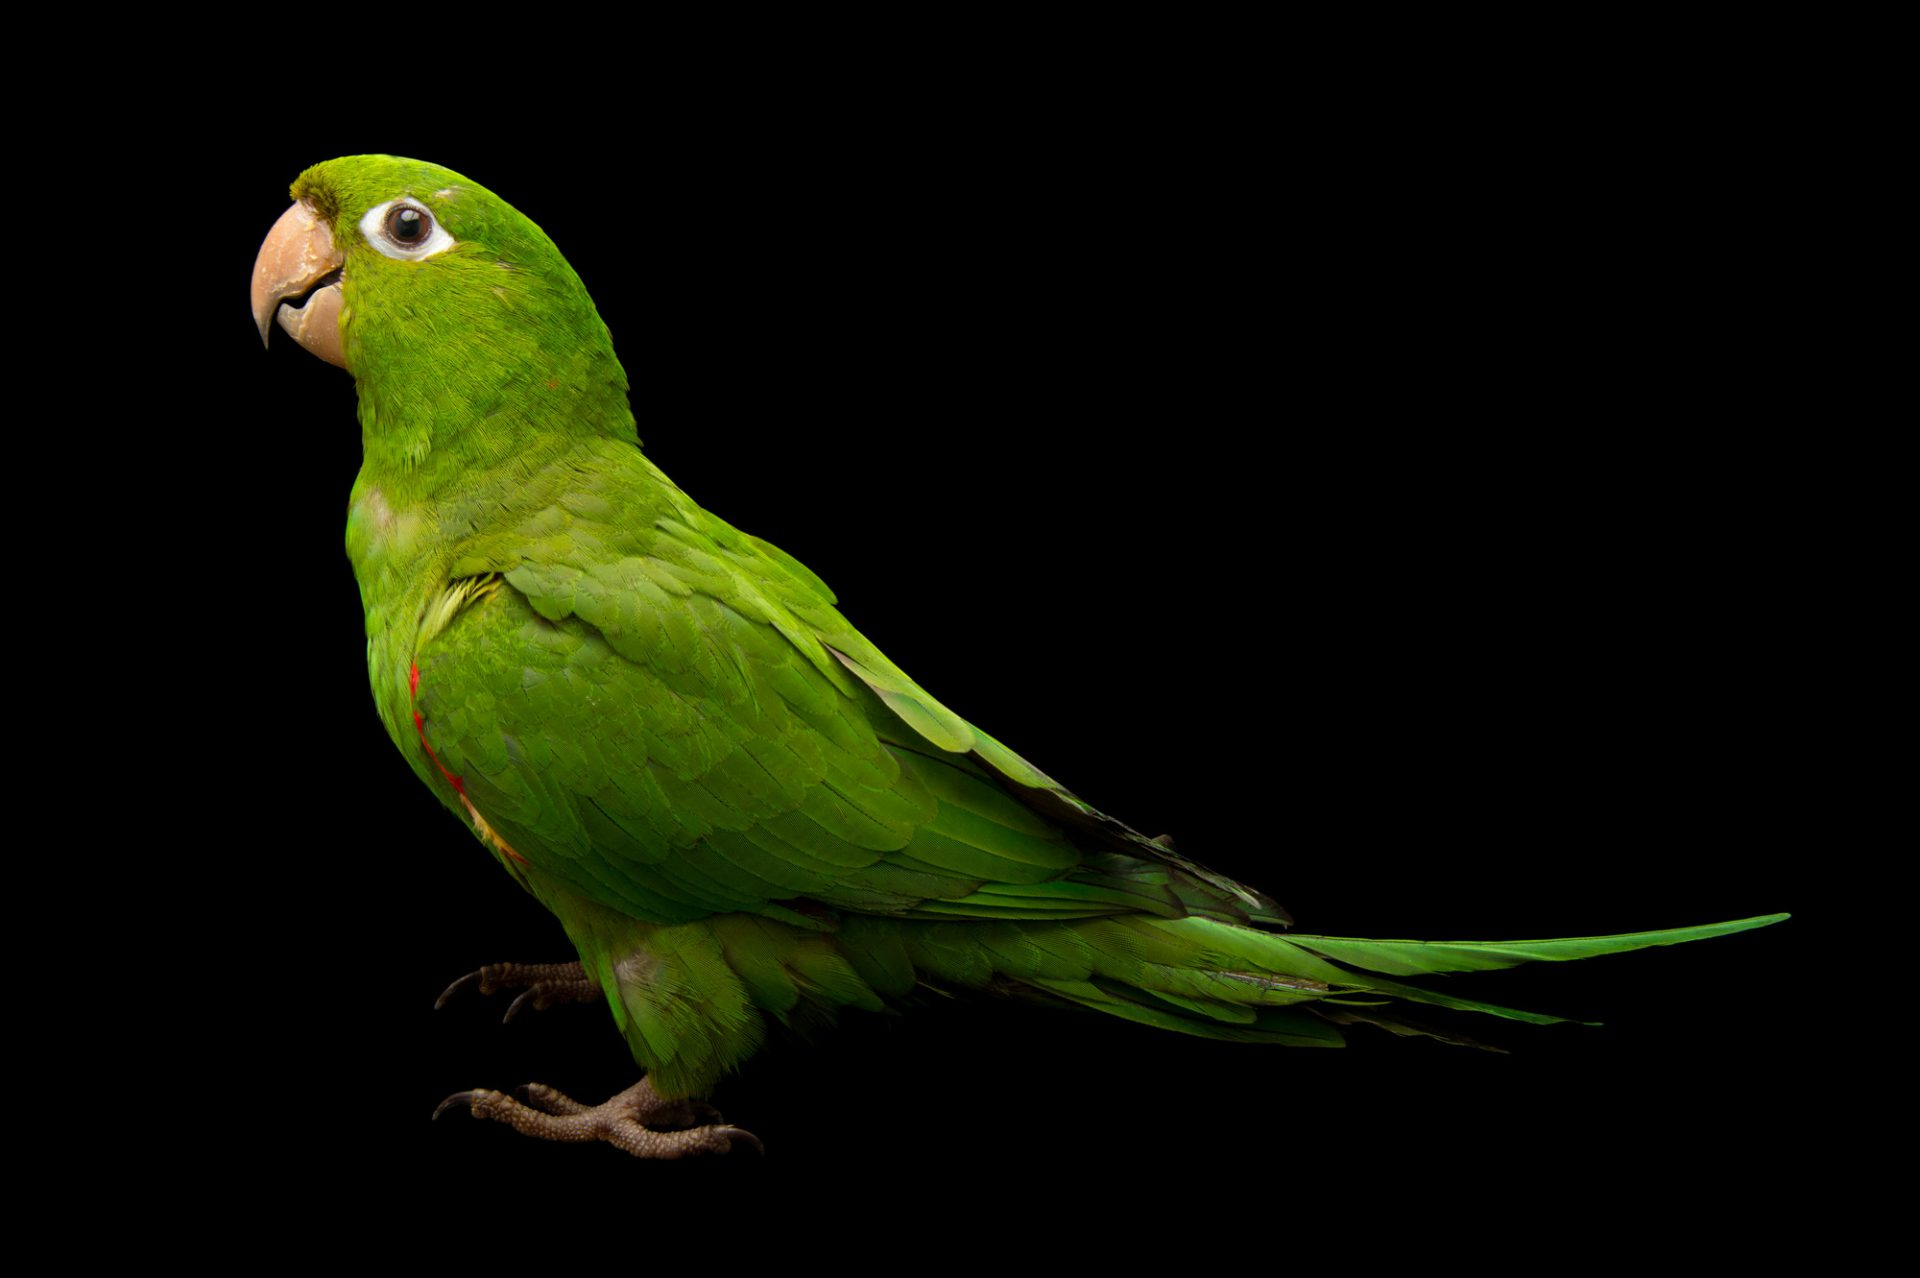 Picture of a Hispaniolan parakeet (Psittacara chloropterus) at Parque Zoologico Nacional, a zoo in Santo Domingo, Dominican Republic.